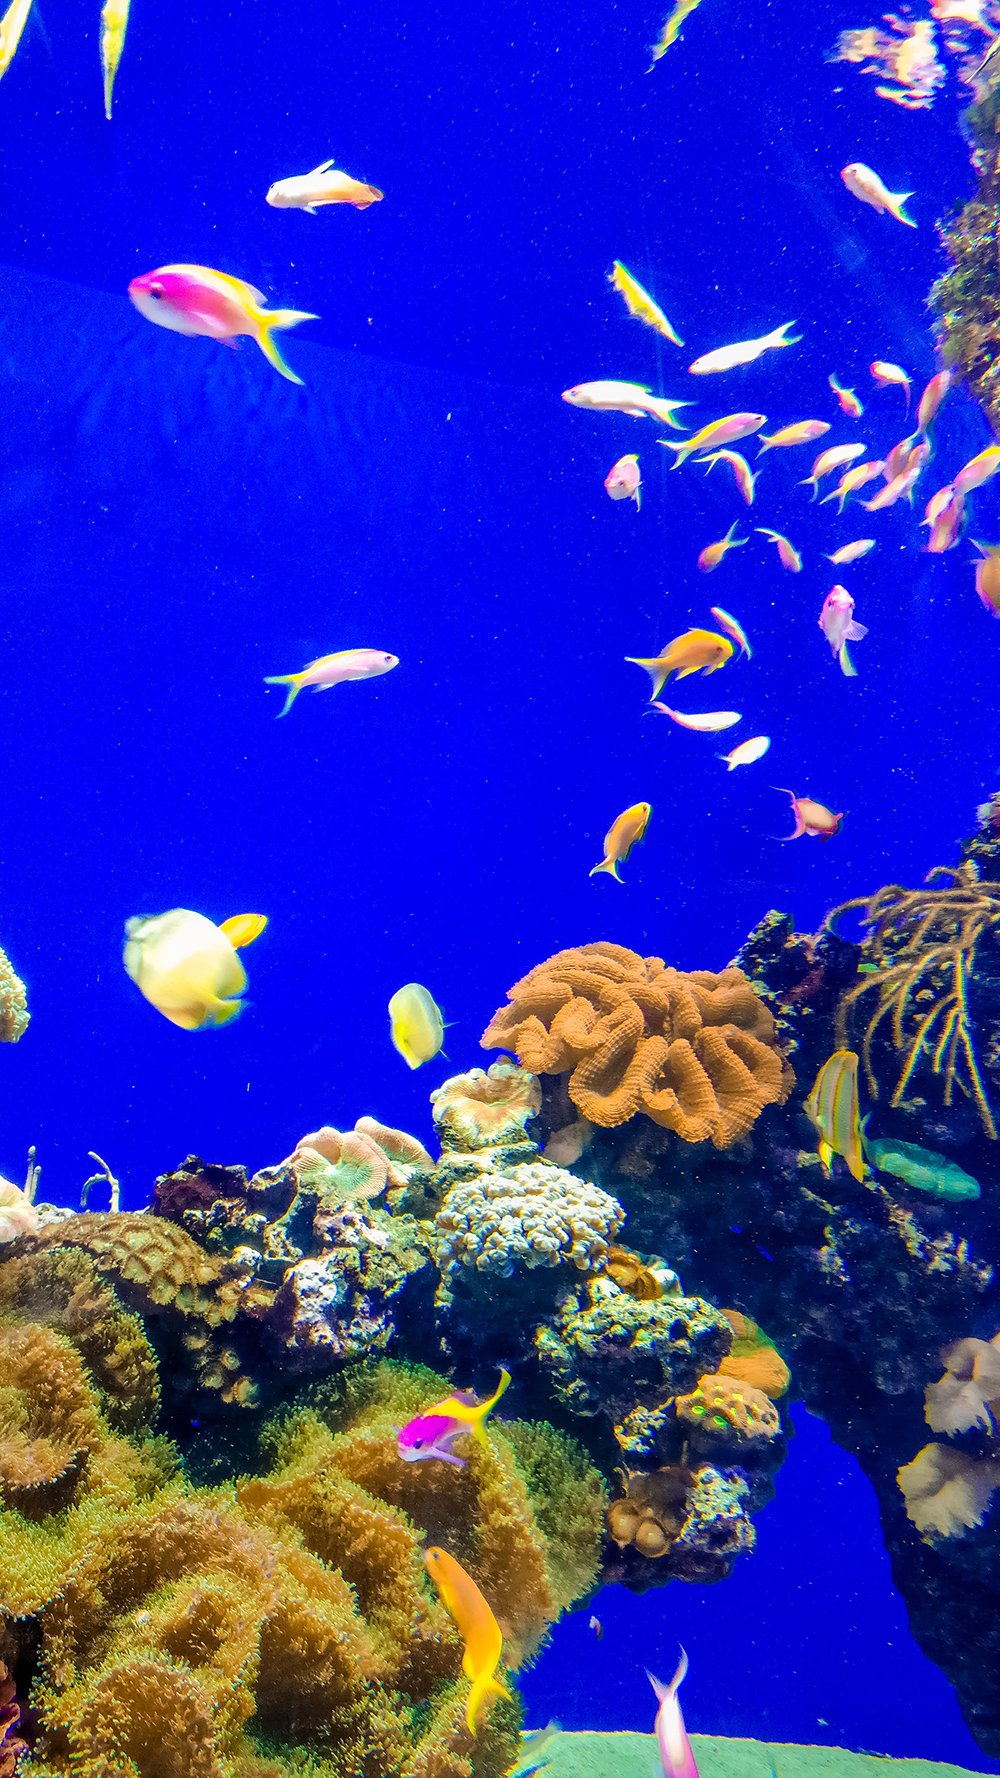 National Aquarium Denmark - Copenhagen 3-day travel itinerary | Aliz's Wonderland